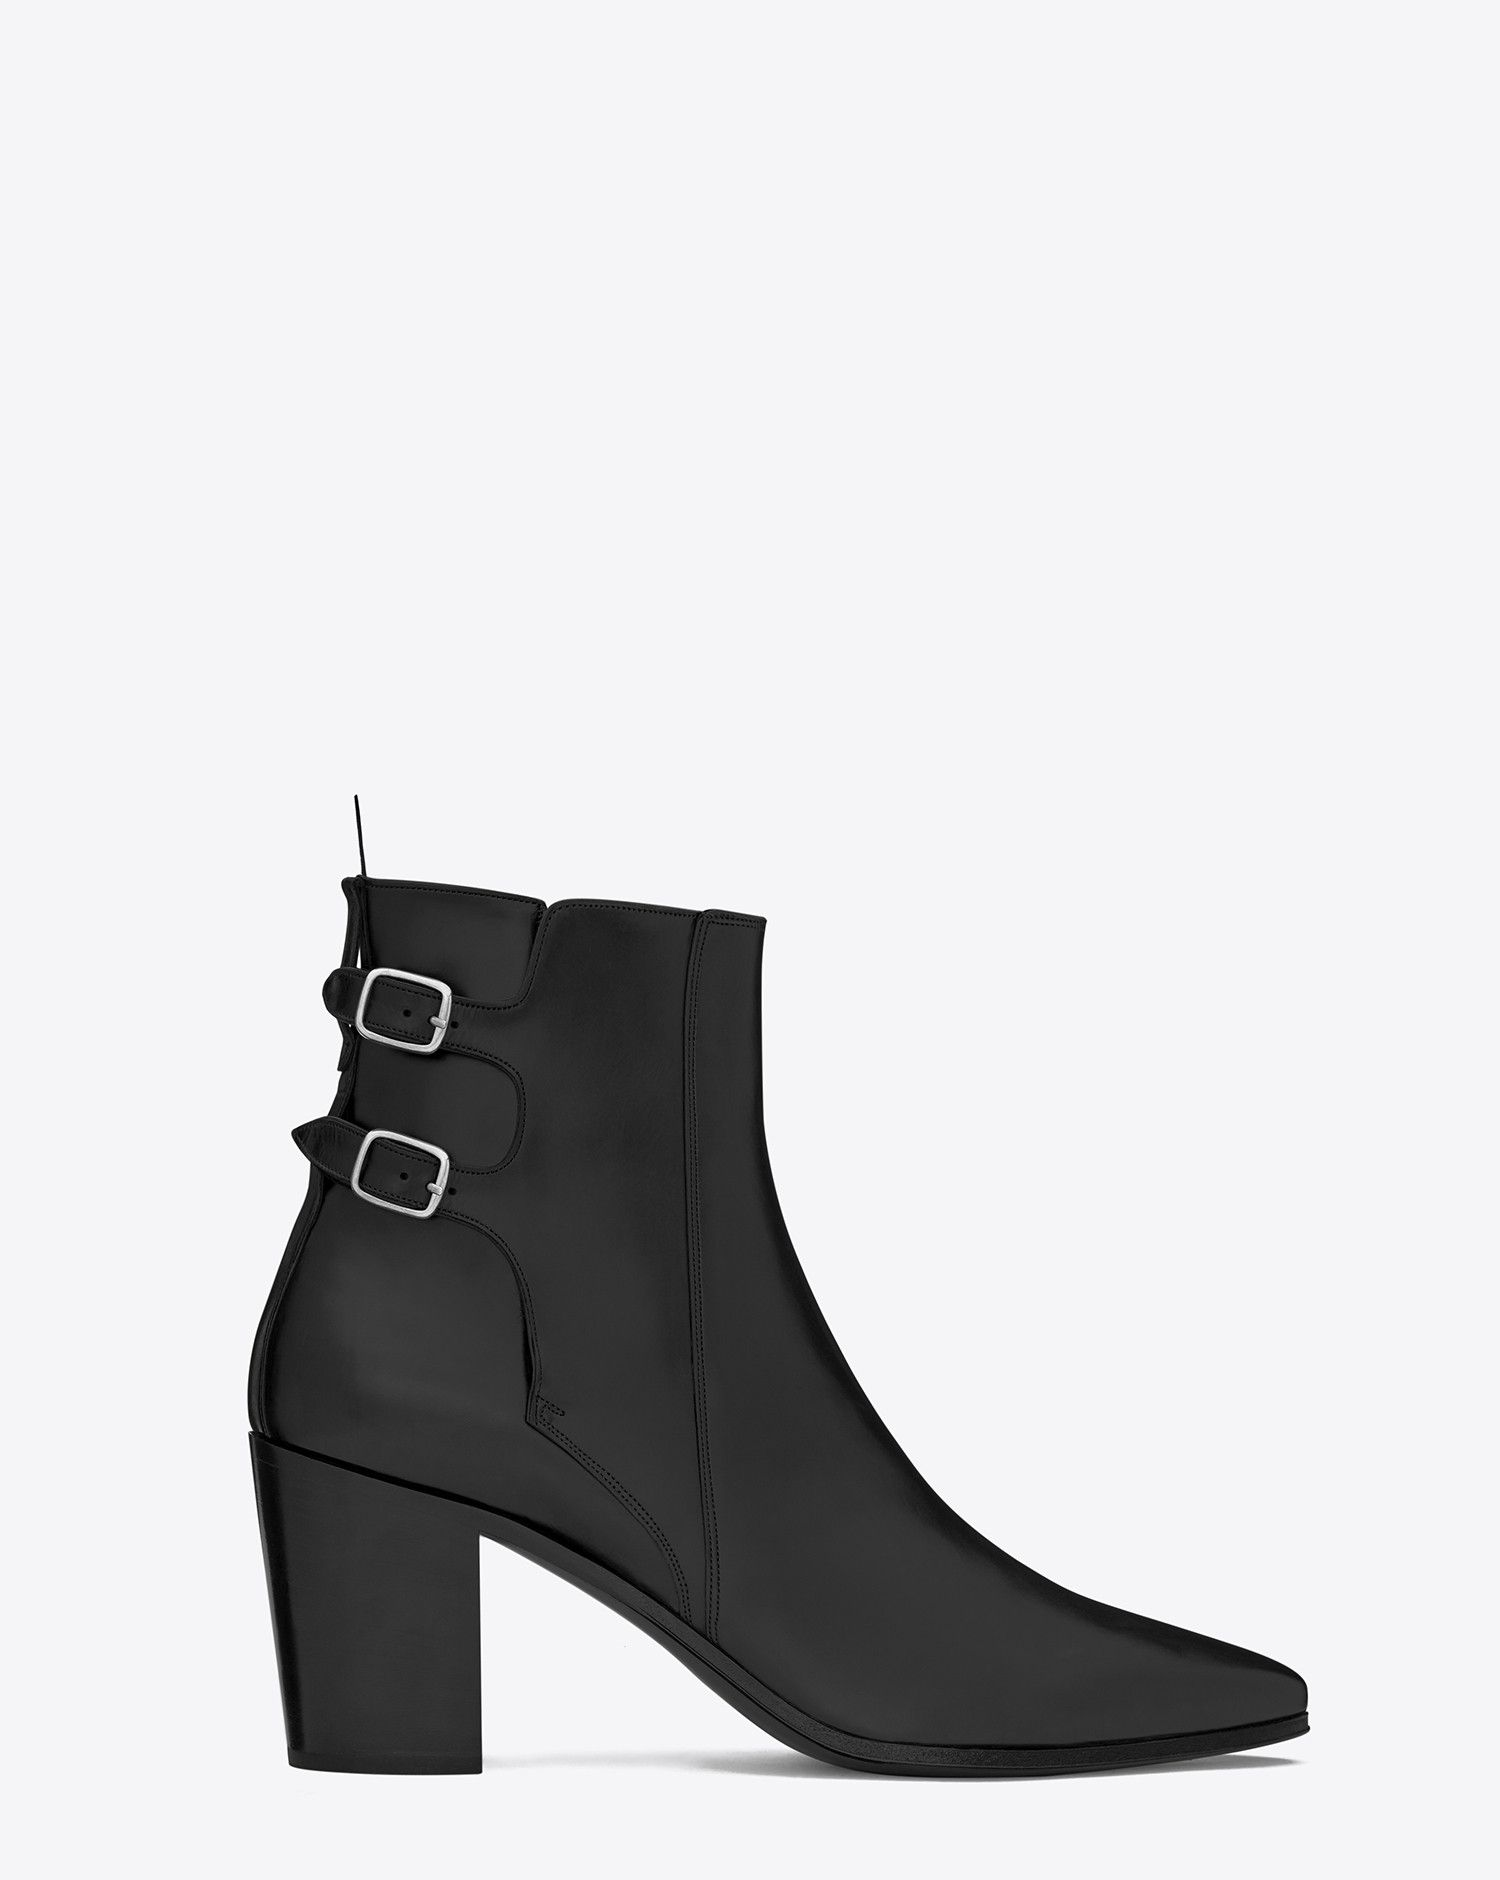 1068f87504 Saint Laurent FRENCH 85 Double Buckle ANKLE BOOT IN BLACK LEATHER ...